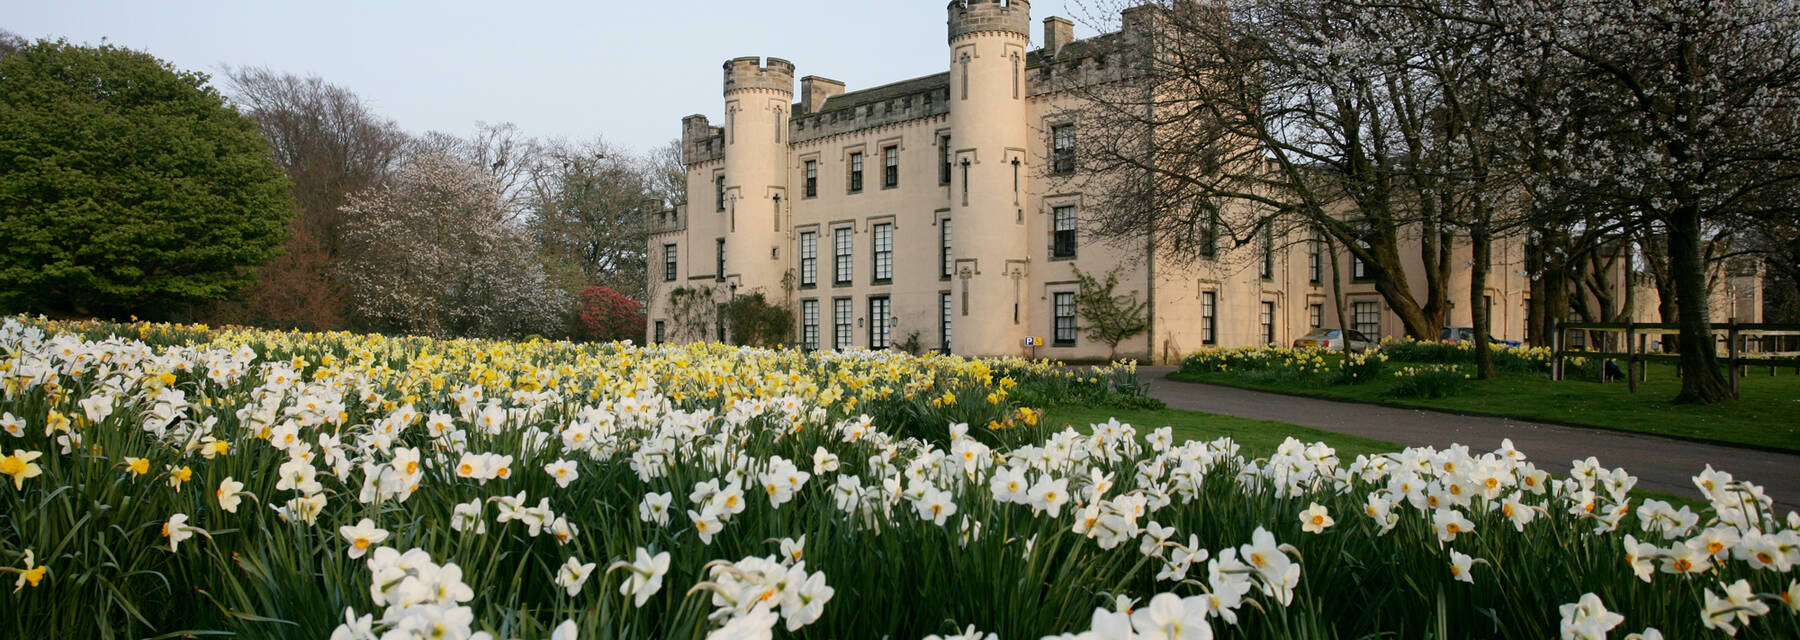 House of Binns exterior with carpets of daffodil in front